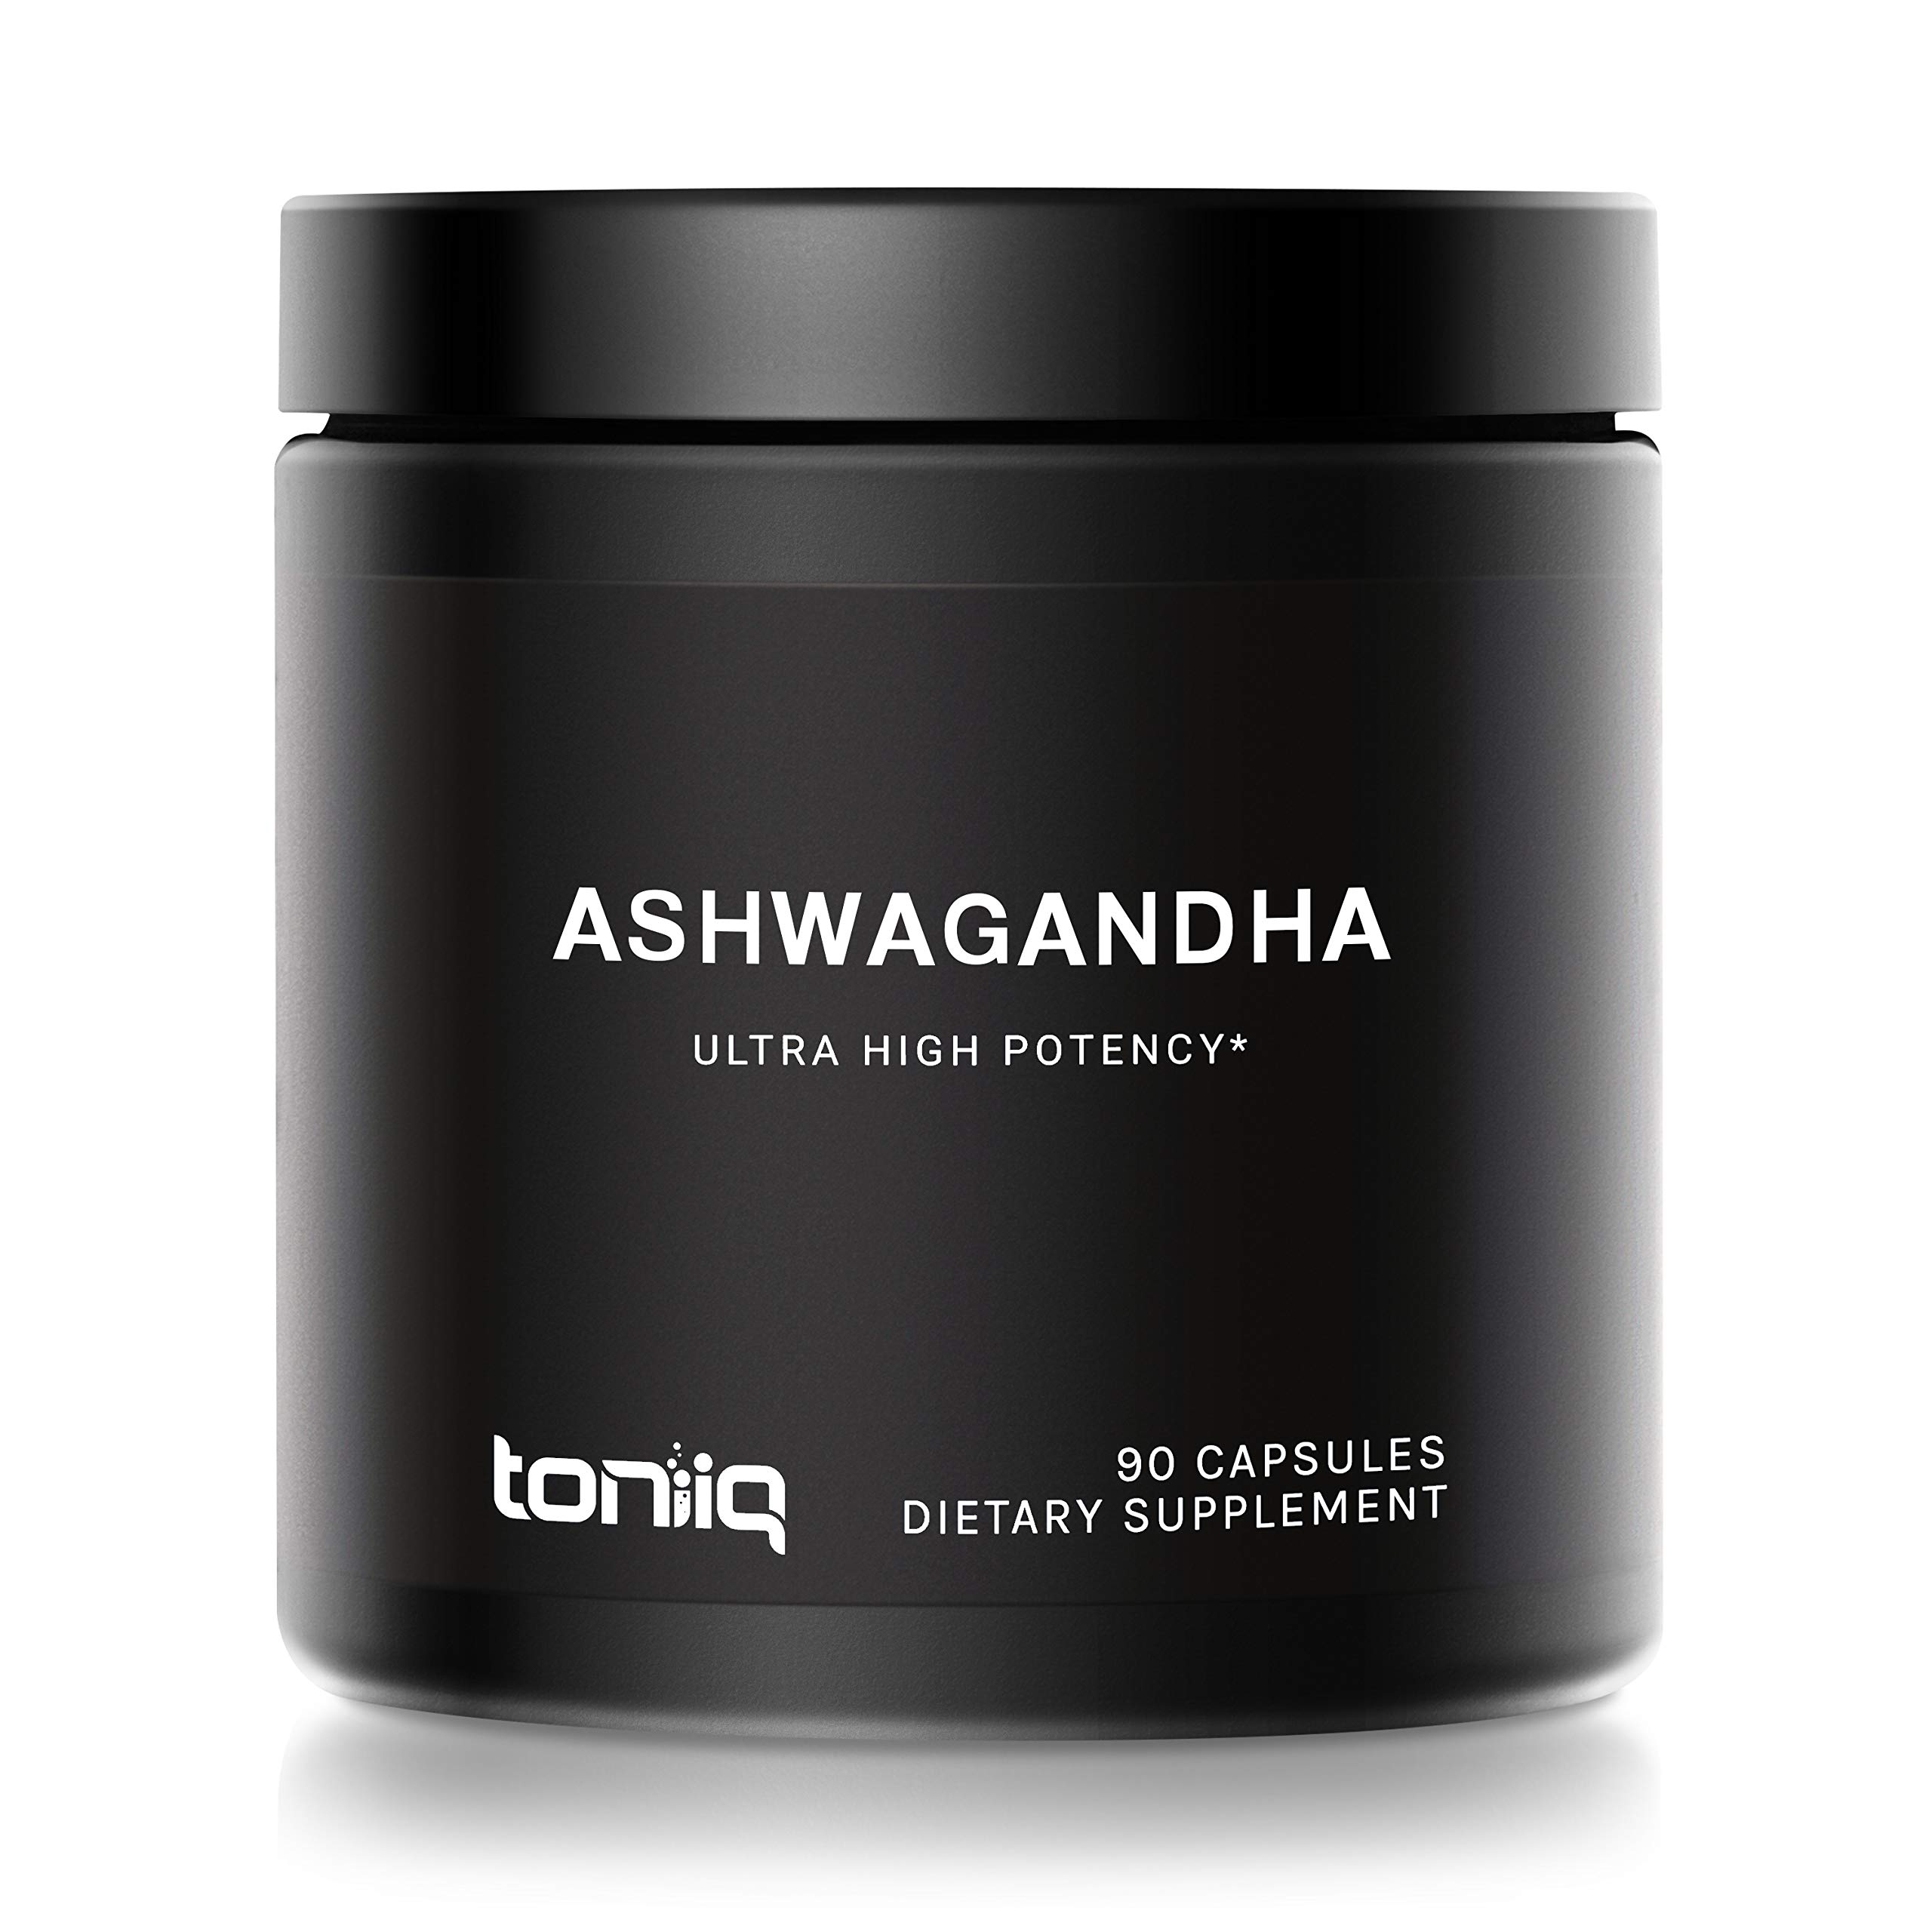 10% Withanolides Ultra High Strength Ashwagandha Capsules - 19,500mg 15x Concentrated Extract - Wild Harvested in India - The Strongest Ashwagandha Available - 90 Caps